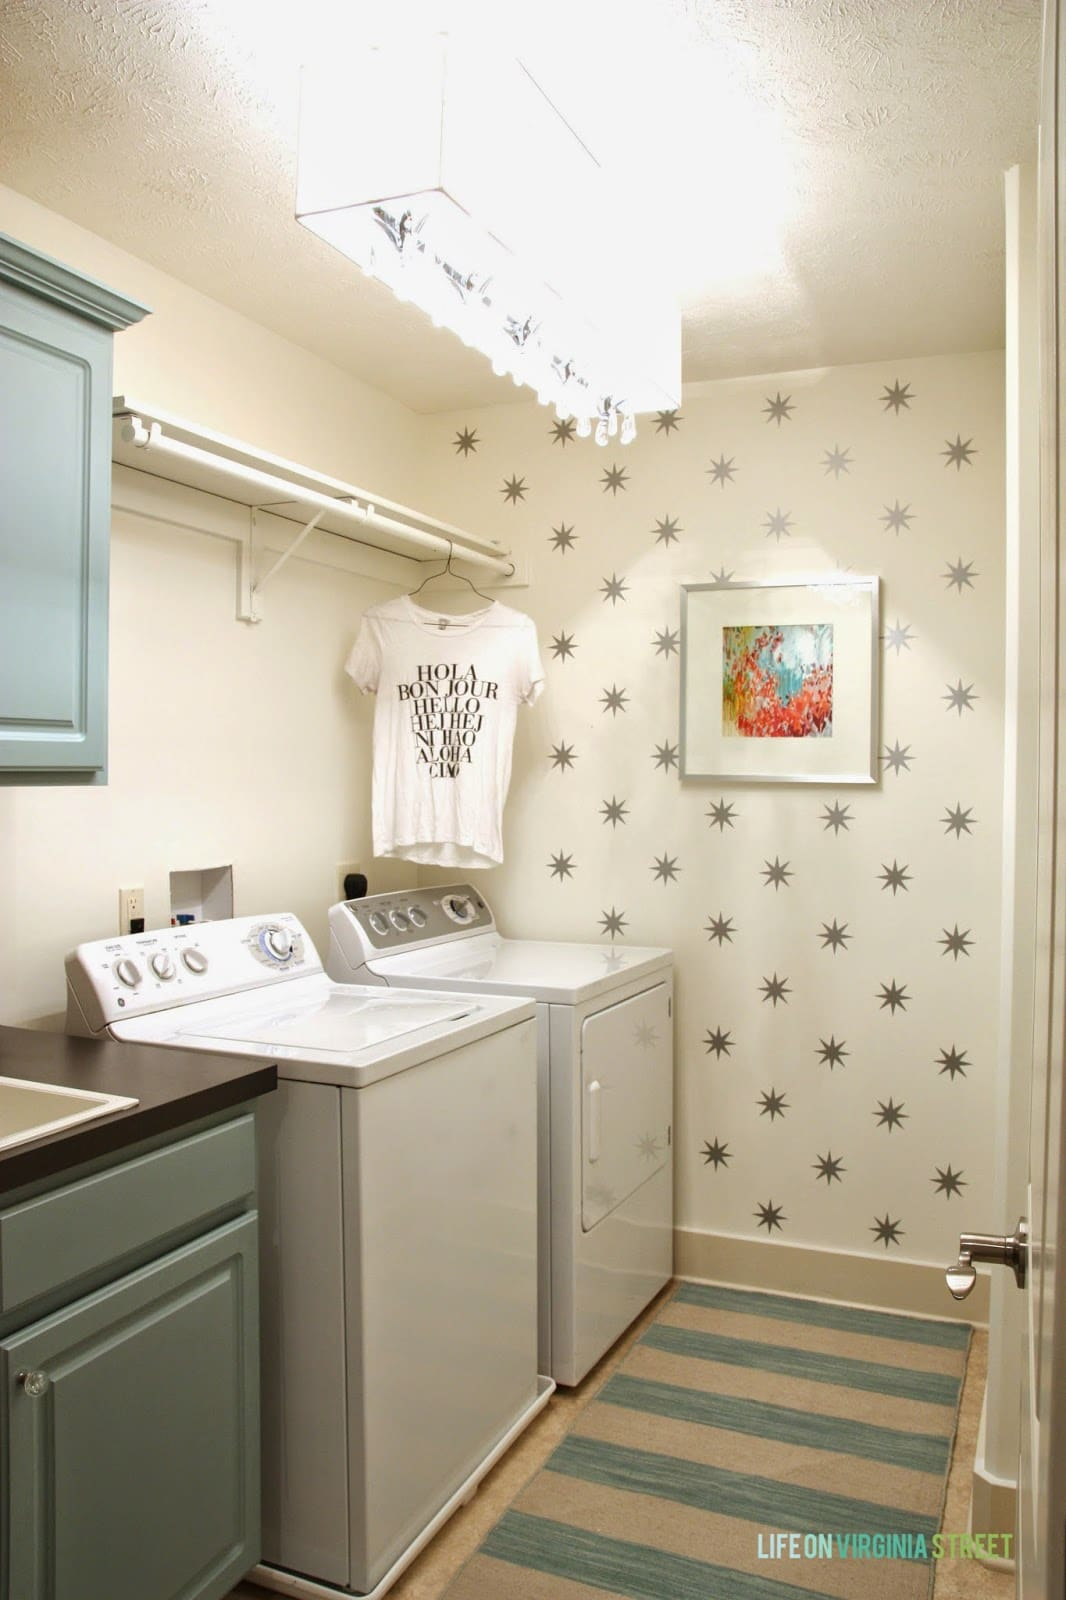 White laundry room with star decals, aqua cabinets, striped rug and colorful art.